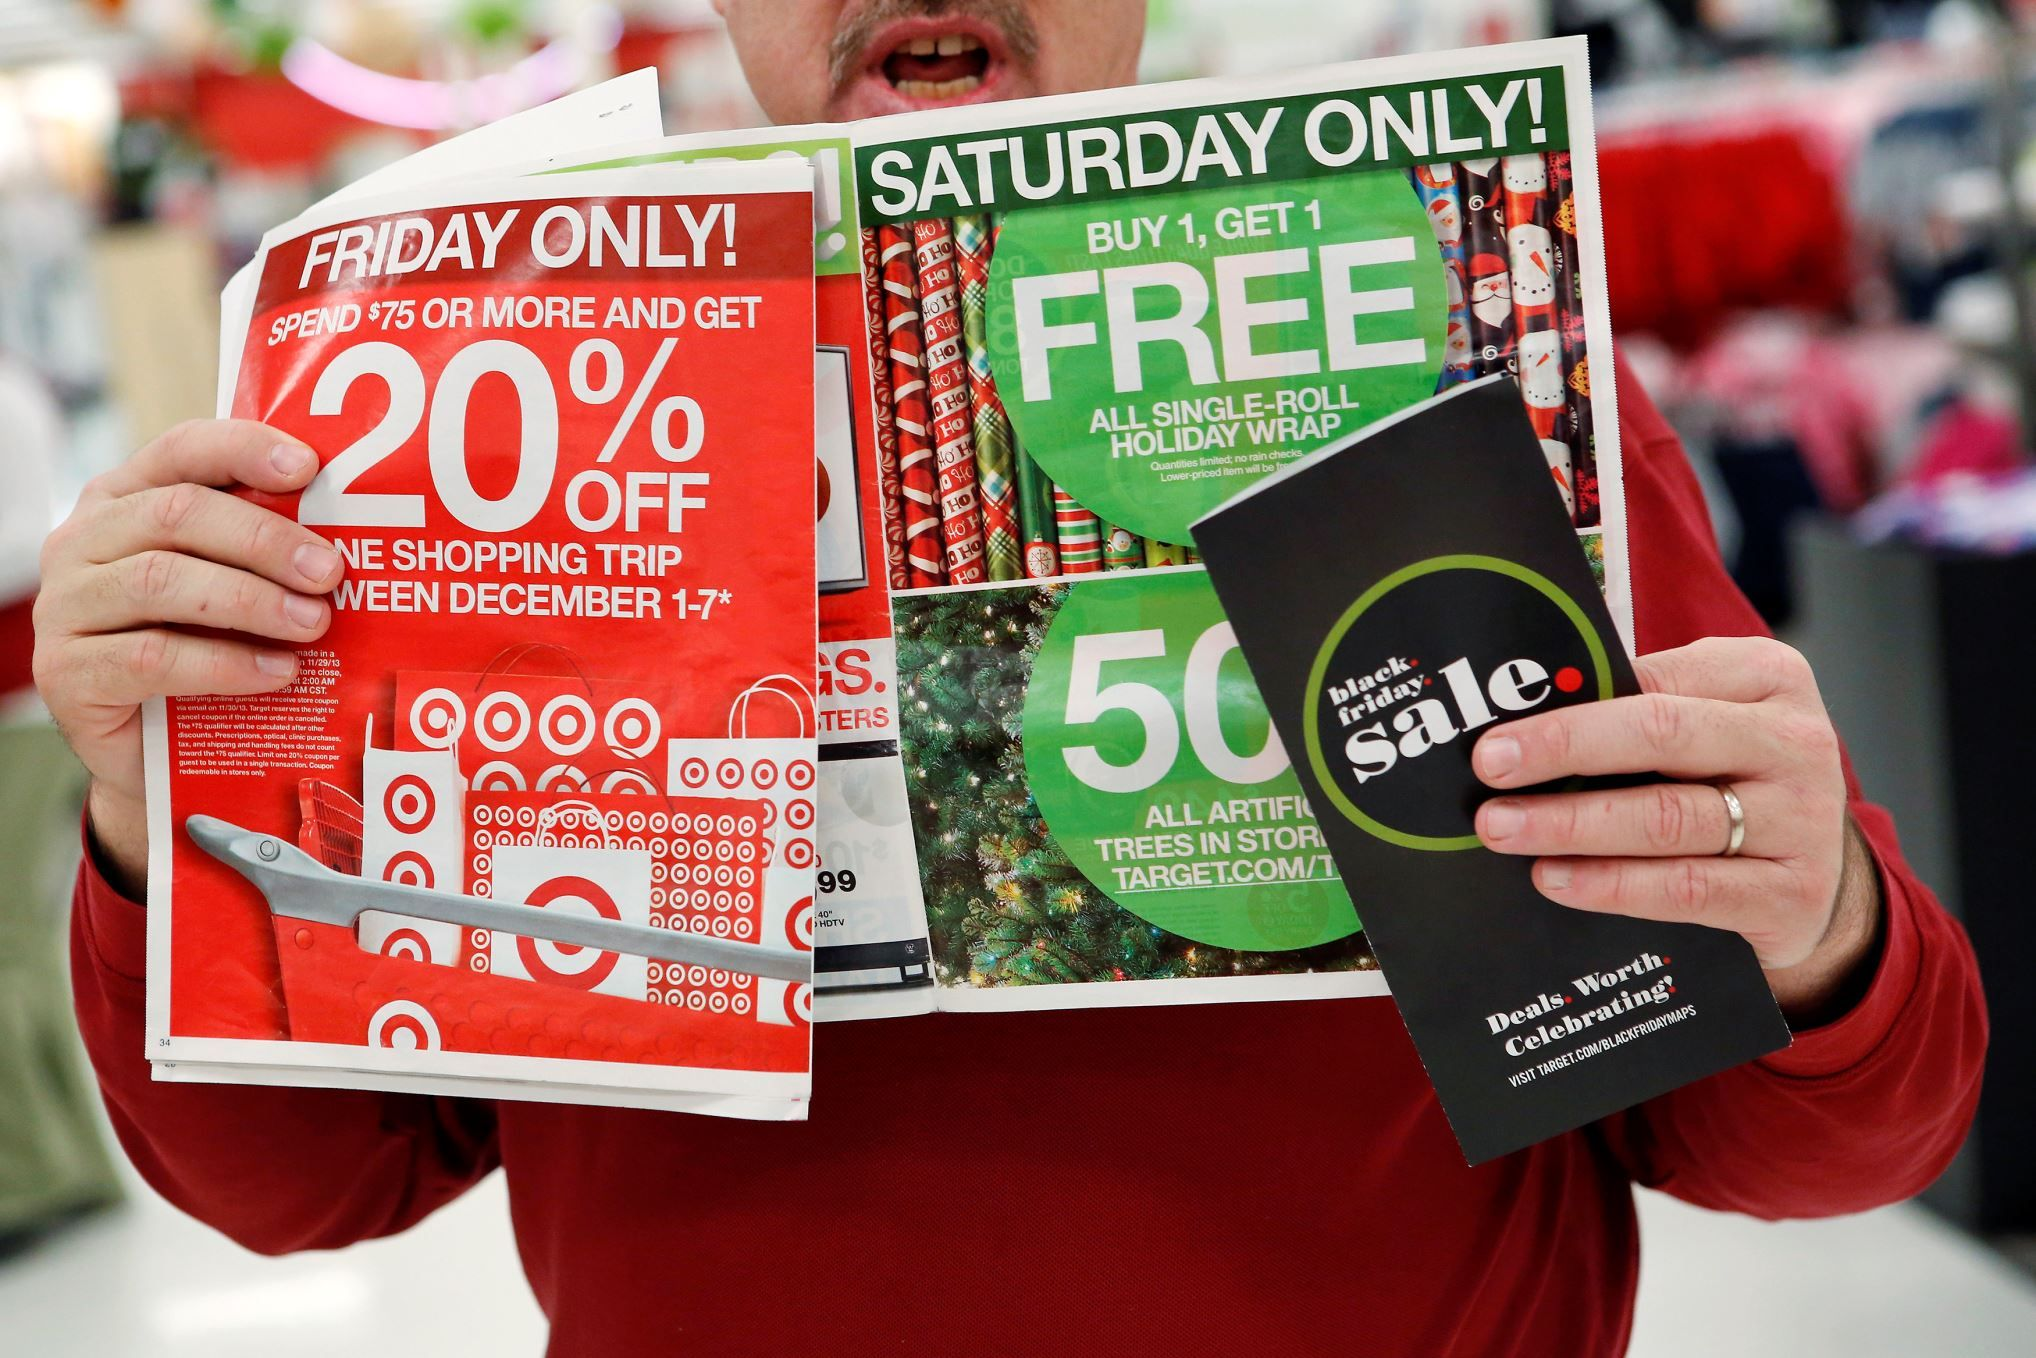 5 Reasons Not to Wait Until Black Friday to Shop-Over the next few weeks, check leaked Black Friday ads at Web sites such as BFAds.net, then see how close you can get to those prices with early sales and coupons available at sites such as Rather-Be-Shopping.com, RetailMeNot.com and Offers.com. Also check deal sites such as DealNews.com and Slickdeals for deeply discounted items that might be at prices comparable to those available on Black Friday.